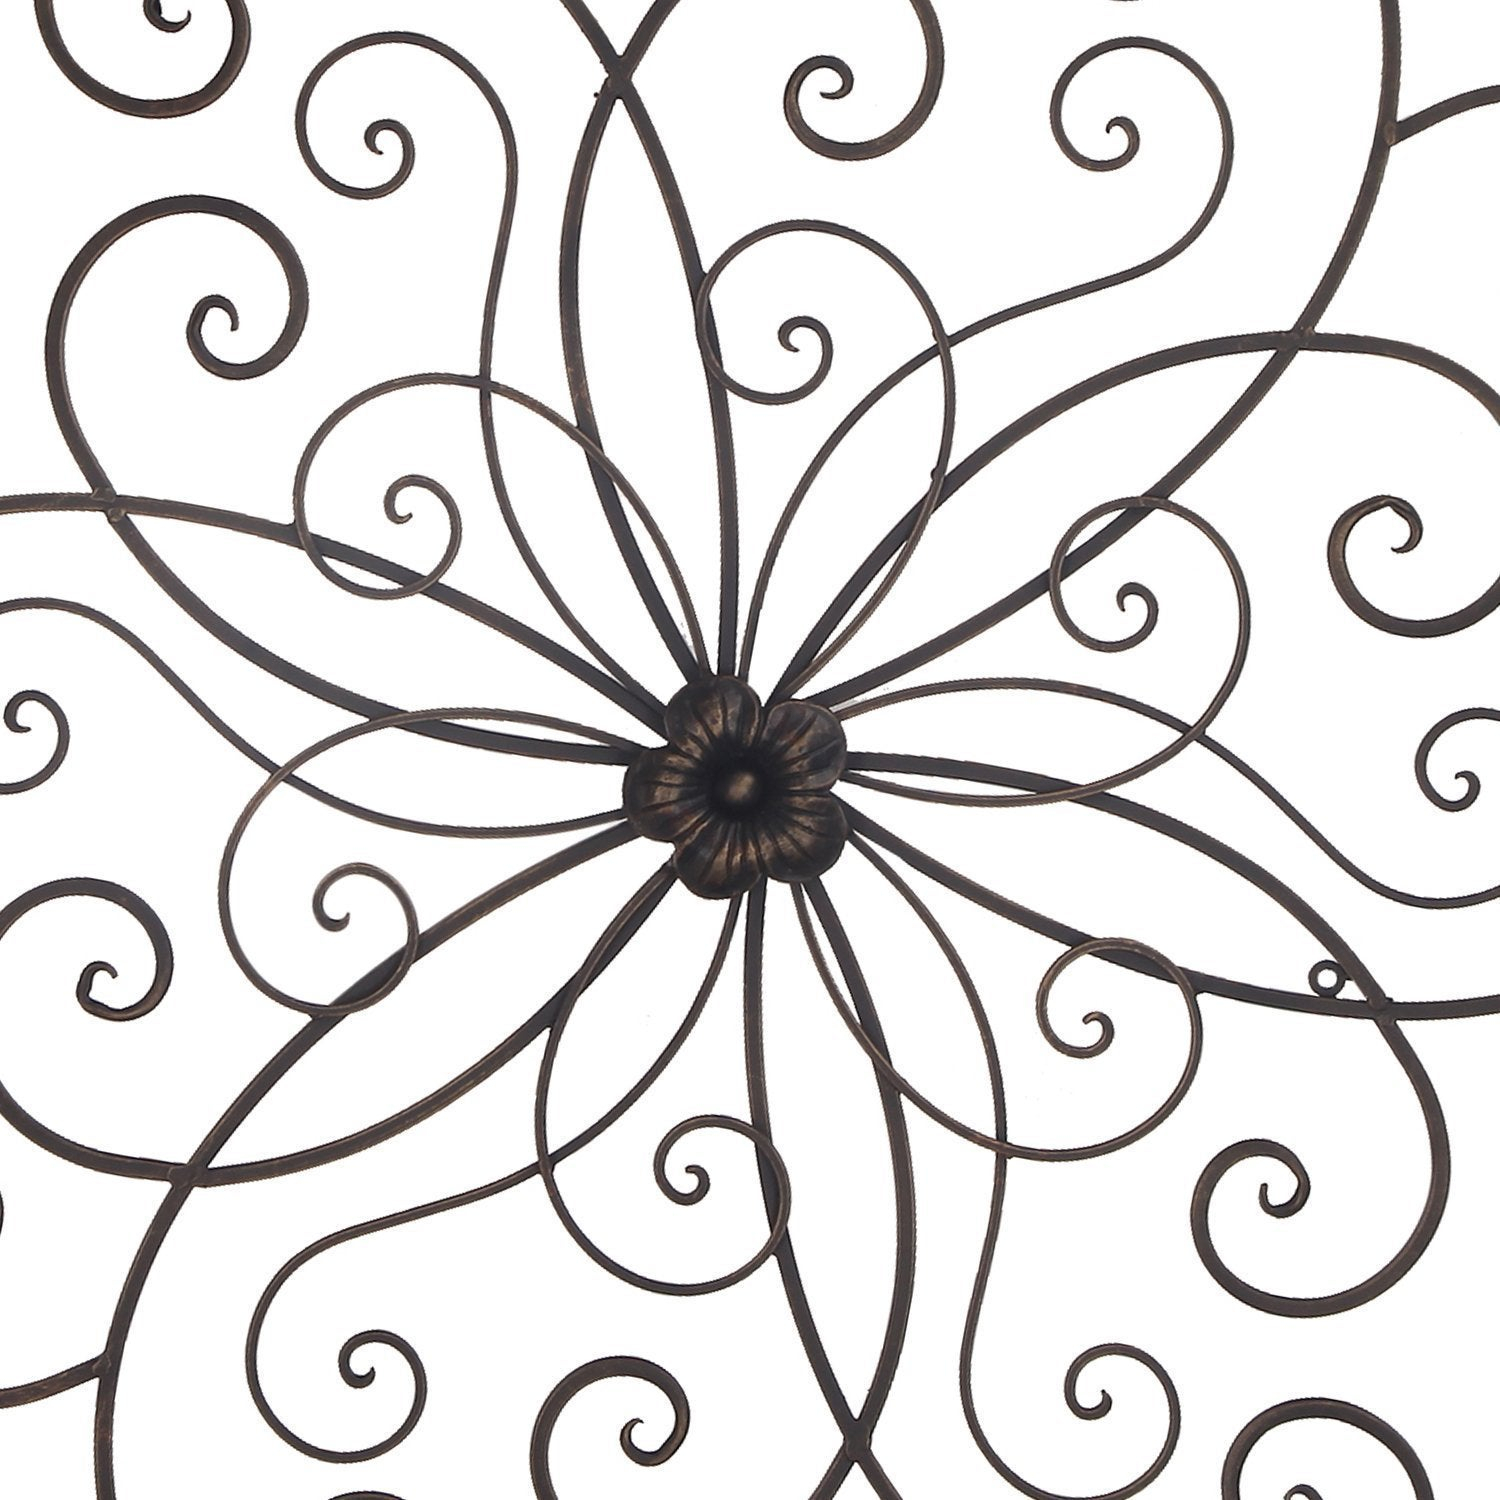 Adeco Bronze Flower Urban Design Metal Wall Decor For Nature Home Art Within Flower Urban Design Metal Wall Decor (View 14 of 30)